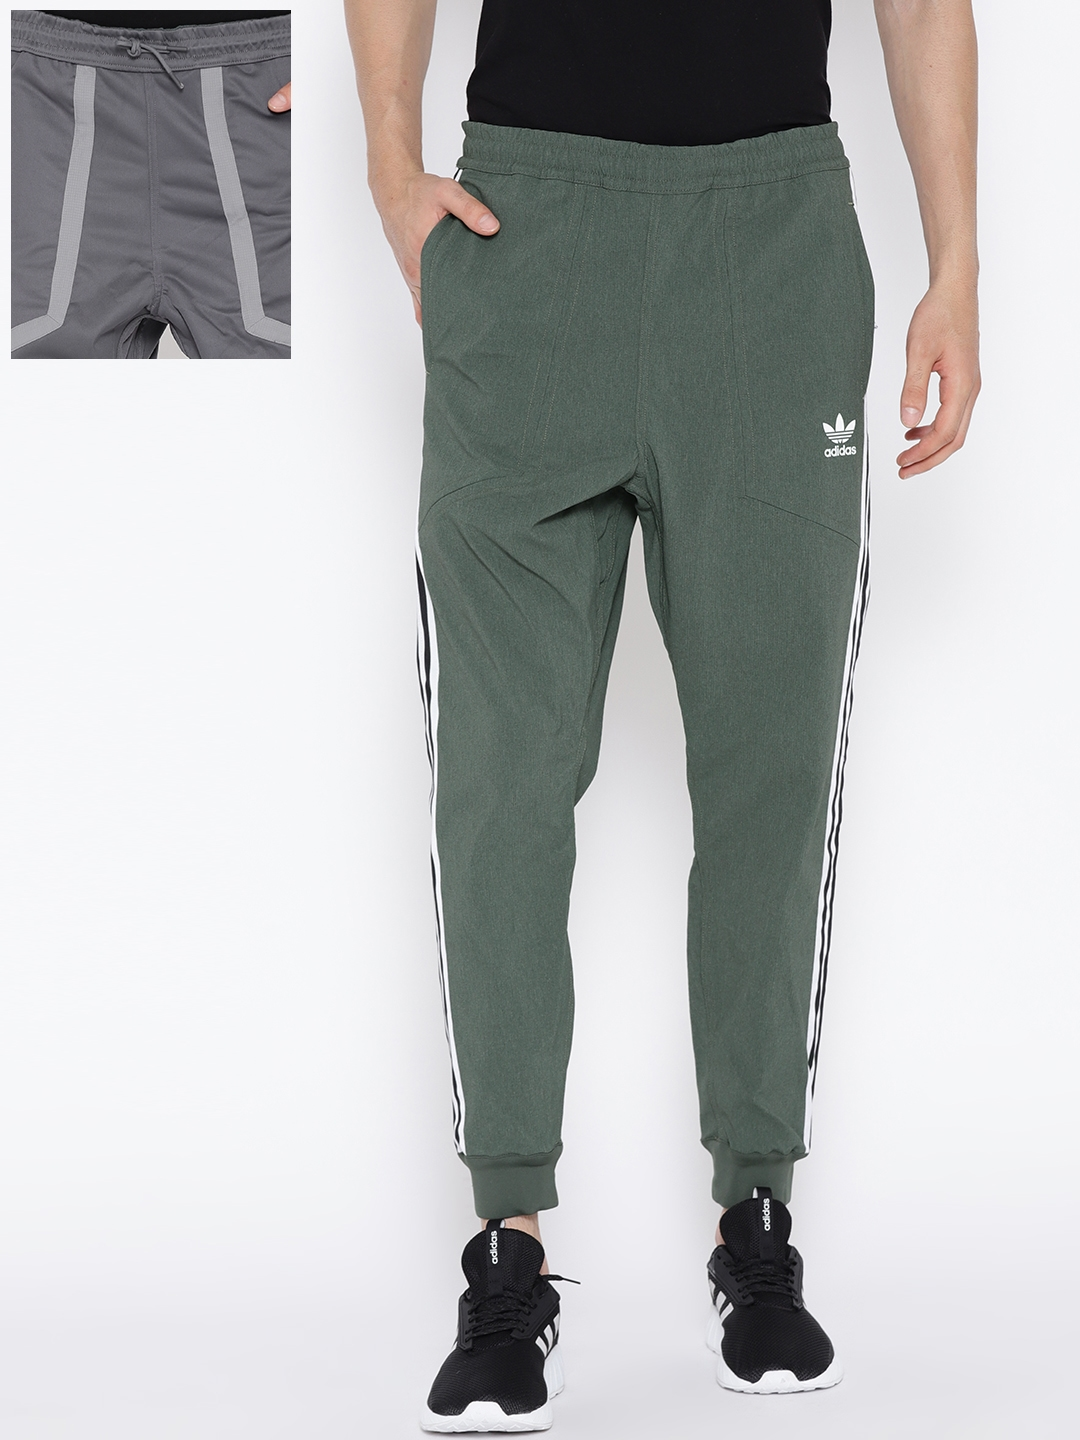 d1f25987b Buy ADIDAS Originals Olive Green & Grey 2020 Reversible Joggers ...